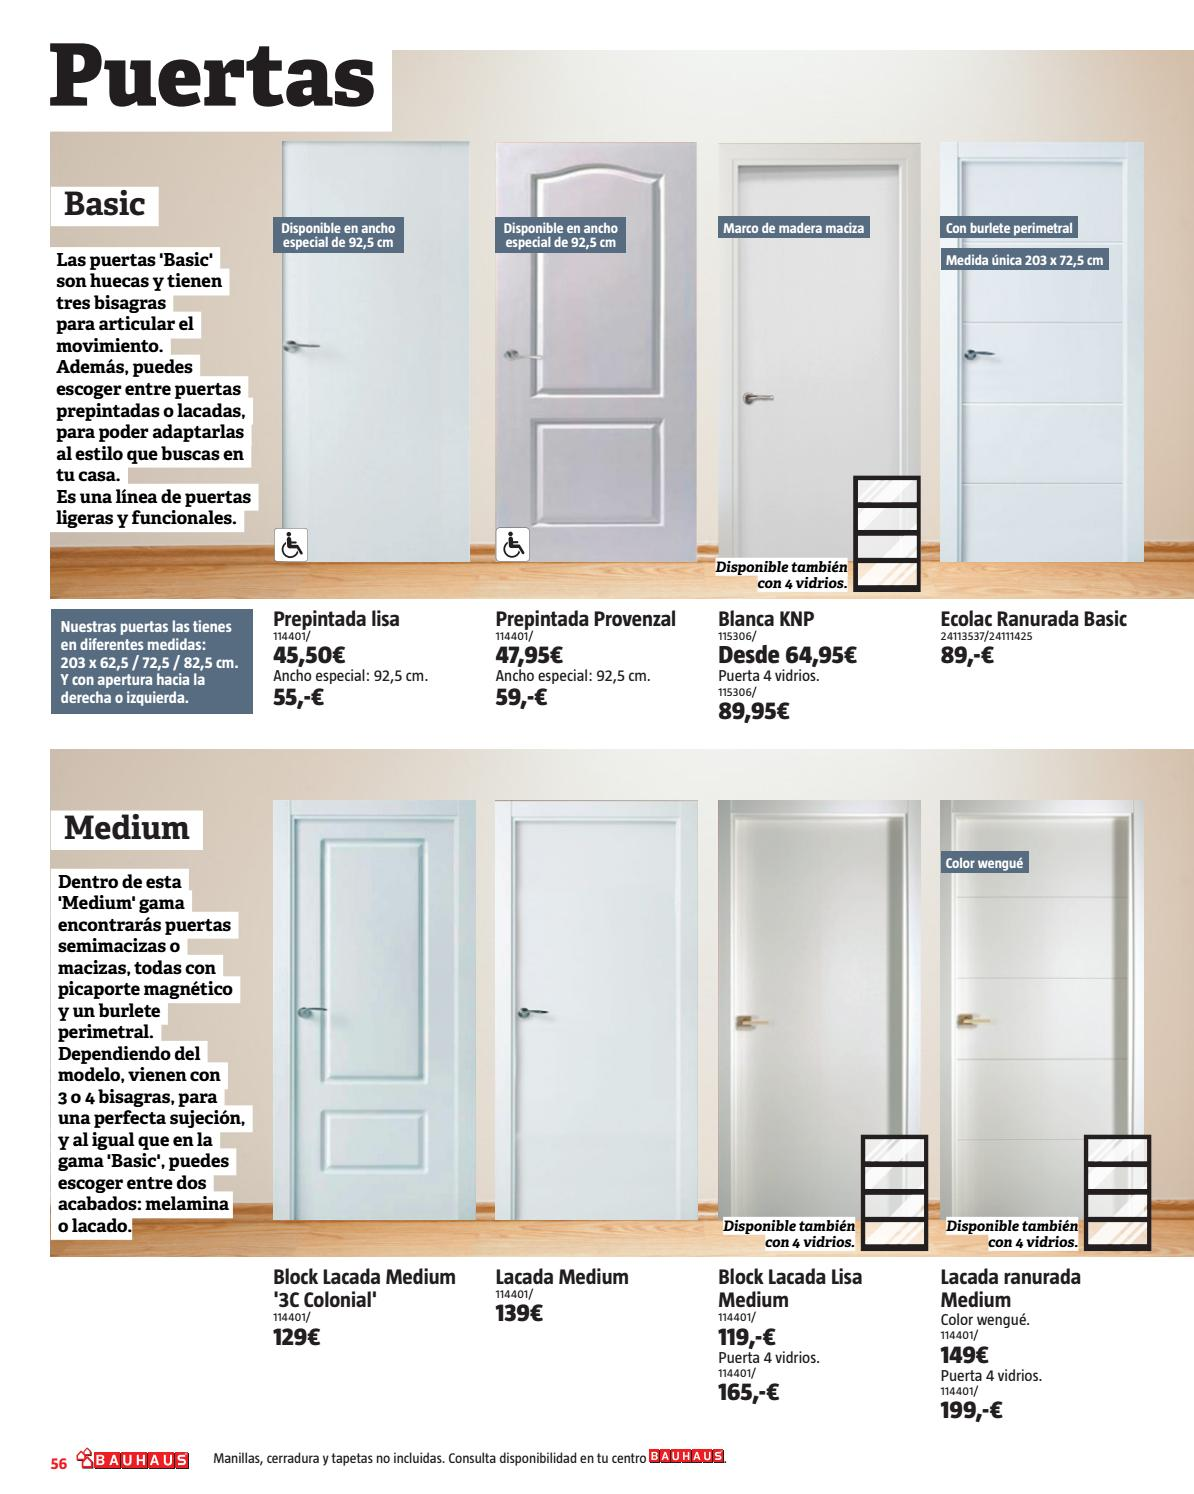 Especial decoraci n by bauhaus issuu for Manillas de puertas de interior